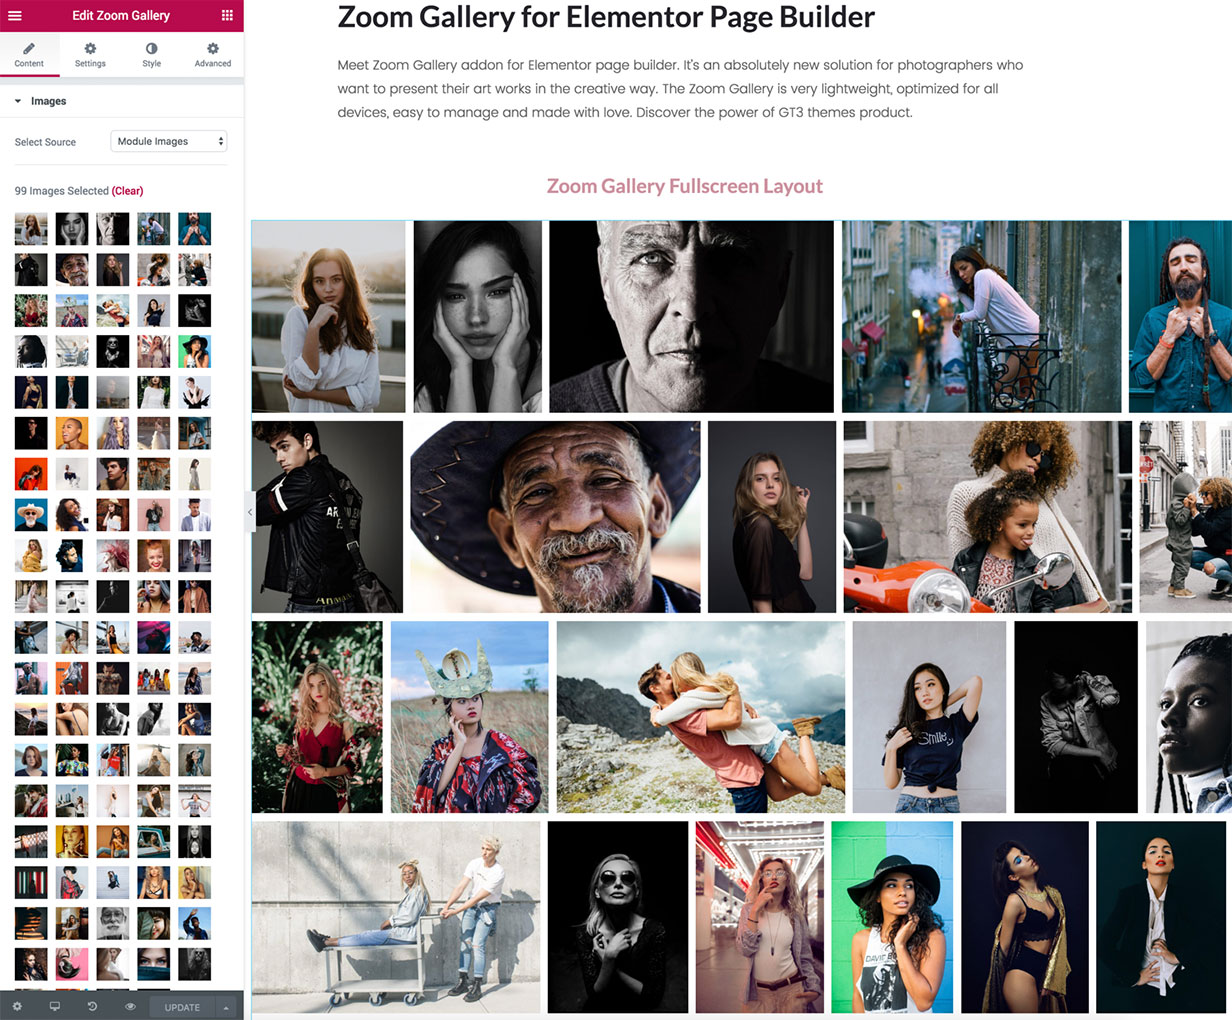 GT3 Zoom Gallery for Elementor Page Builder - 1